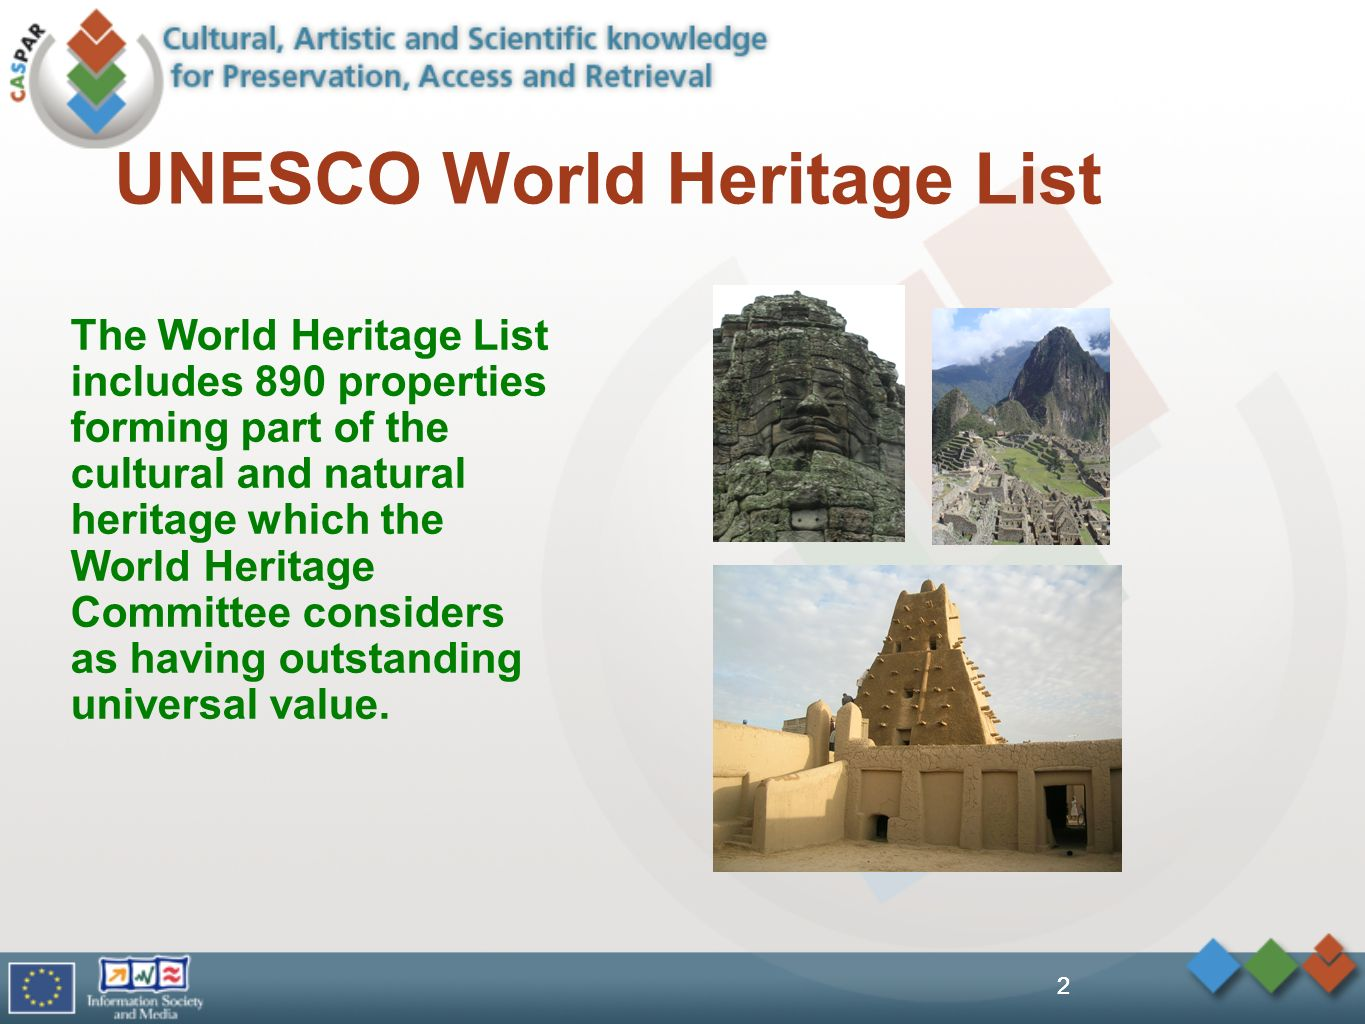 2 UNESCO World Heritage List The World Heritage List includes 890 properties forming part of the cultural and natural heritage which the World Heritage Committee considers as having outstanding universal value.